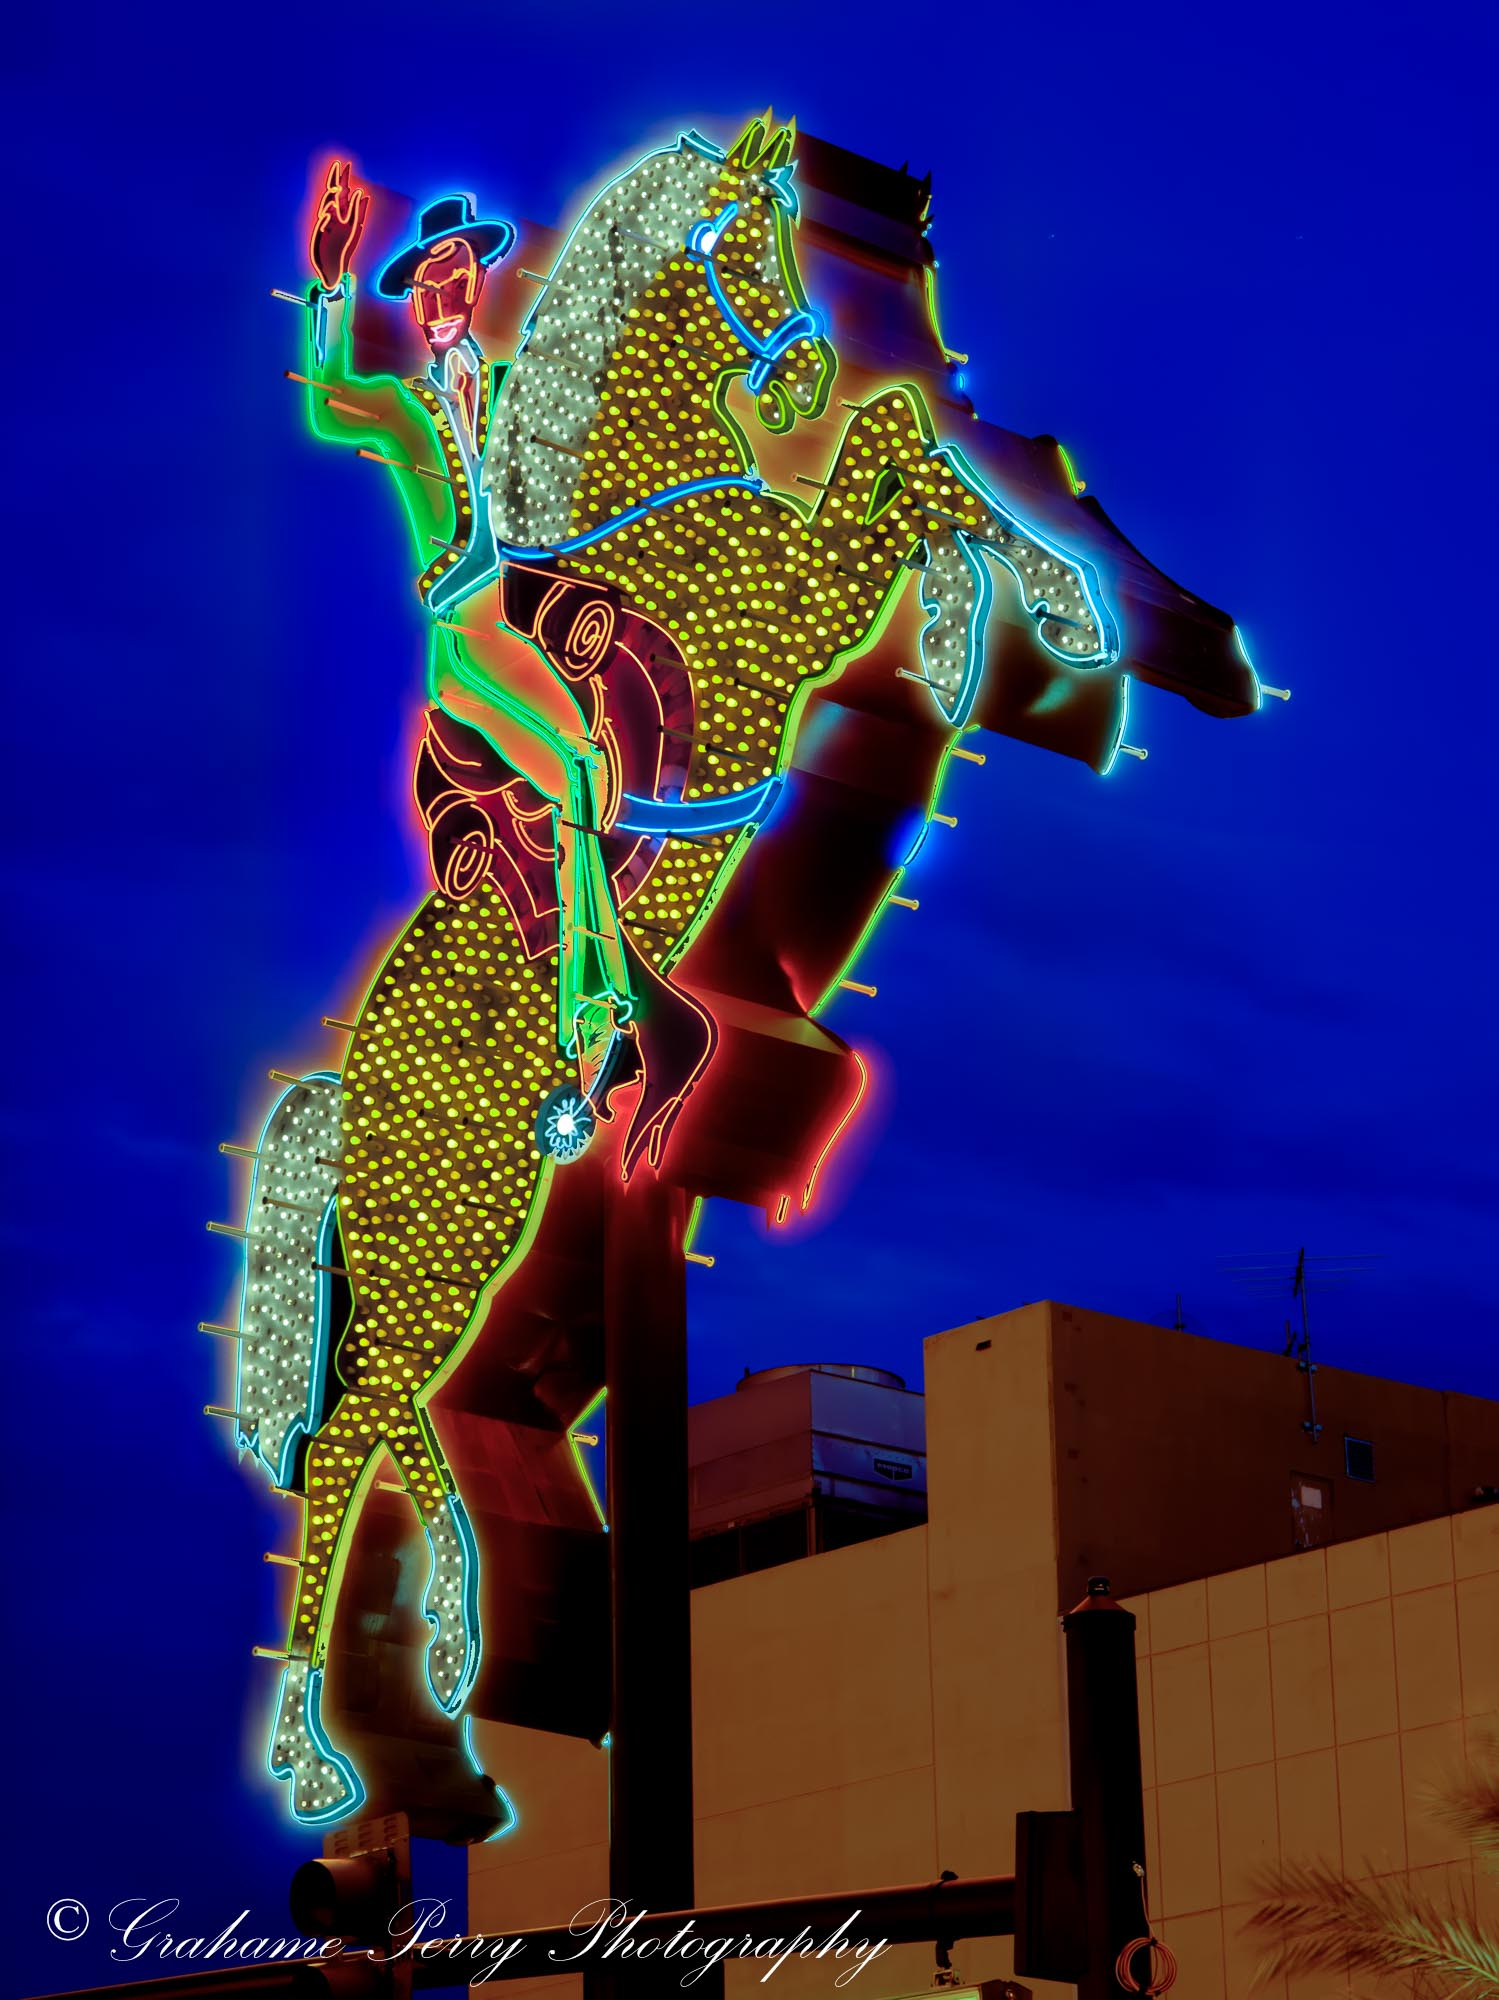 Grahame Perry - 81 Bees - Night Show - Neon Cowboy.jpg